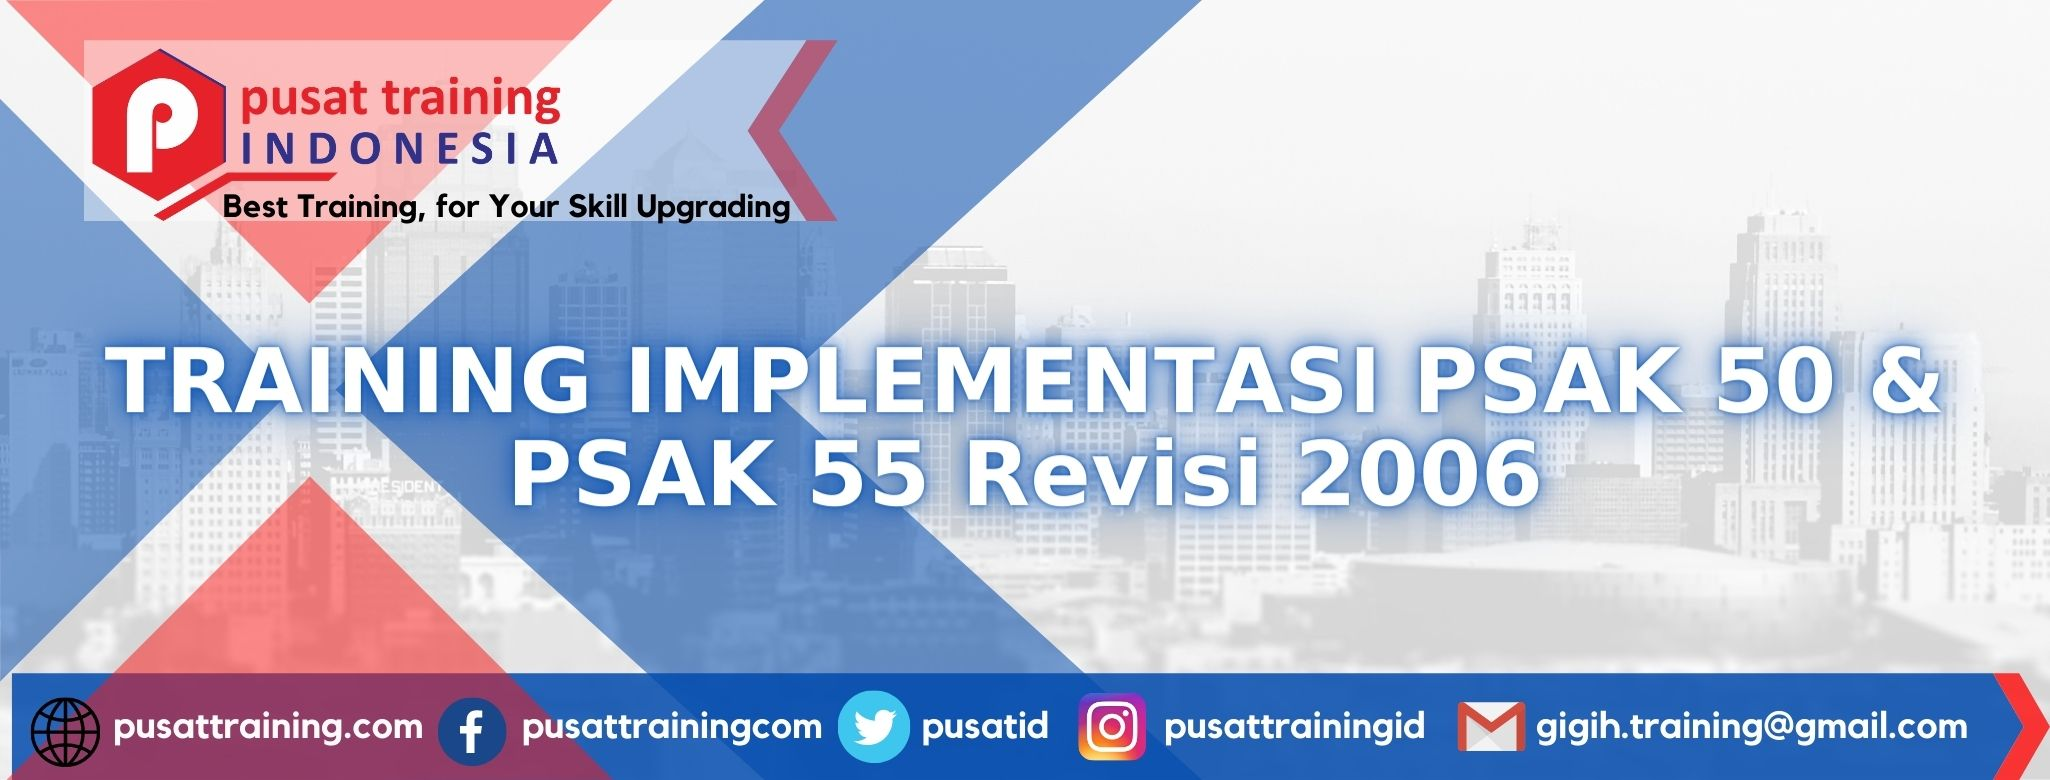 Training-Implementasi-PSAK-50-PSAK-55-Revisi-2006